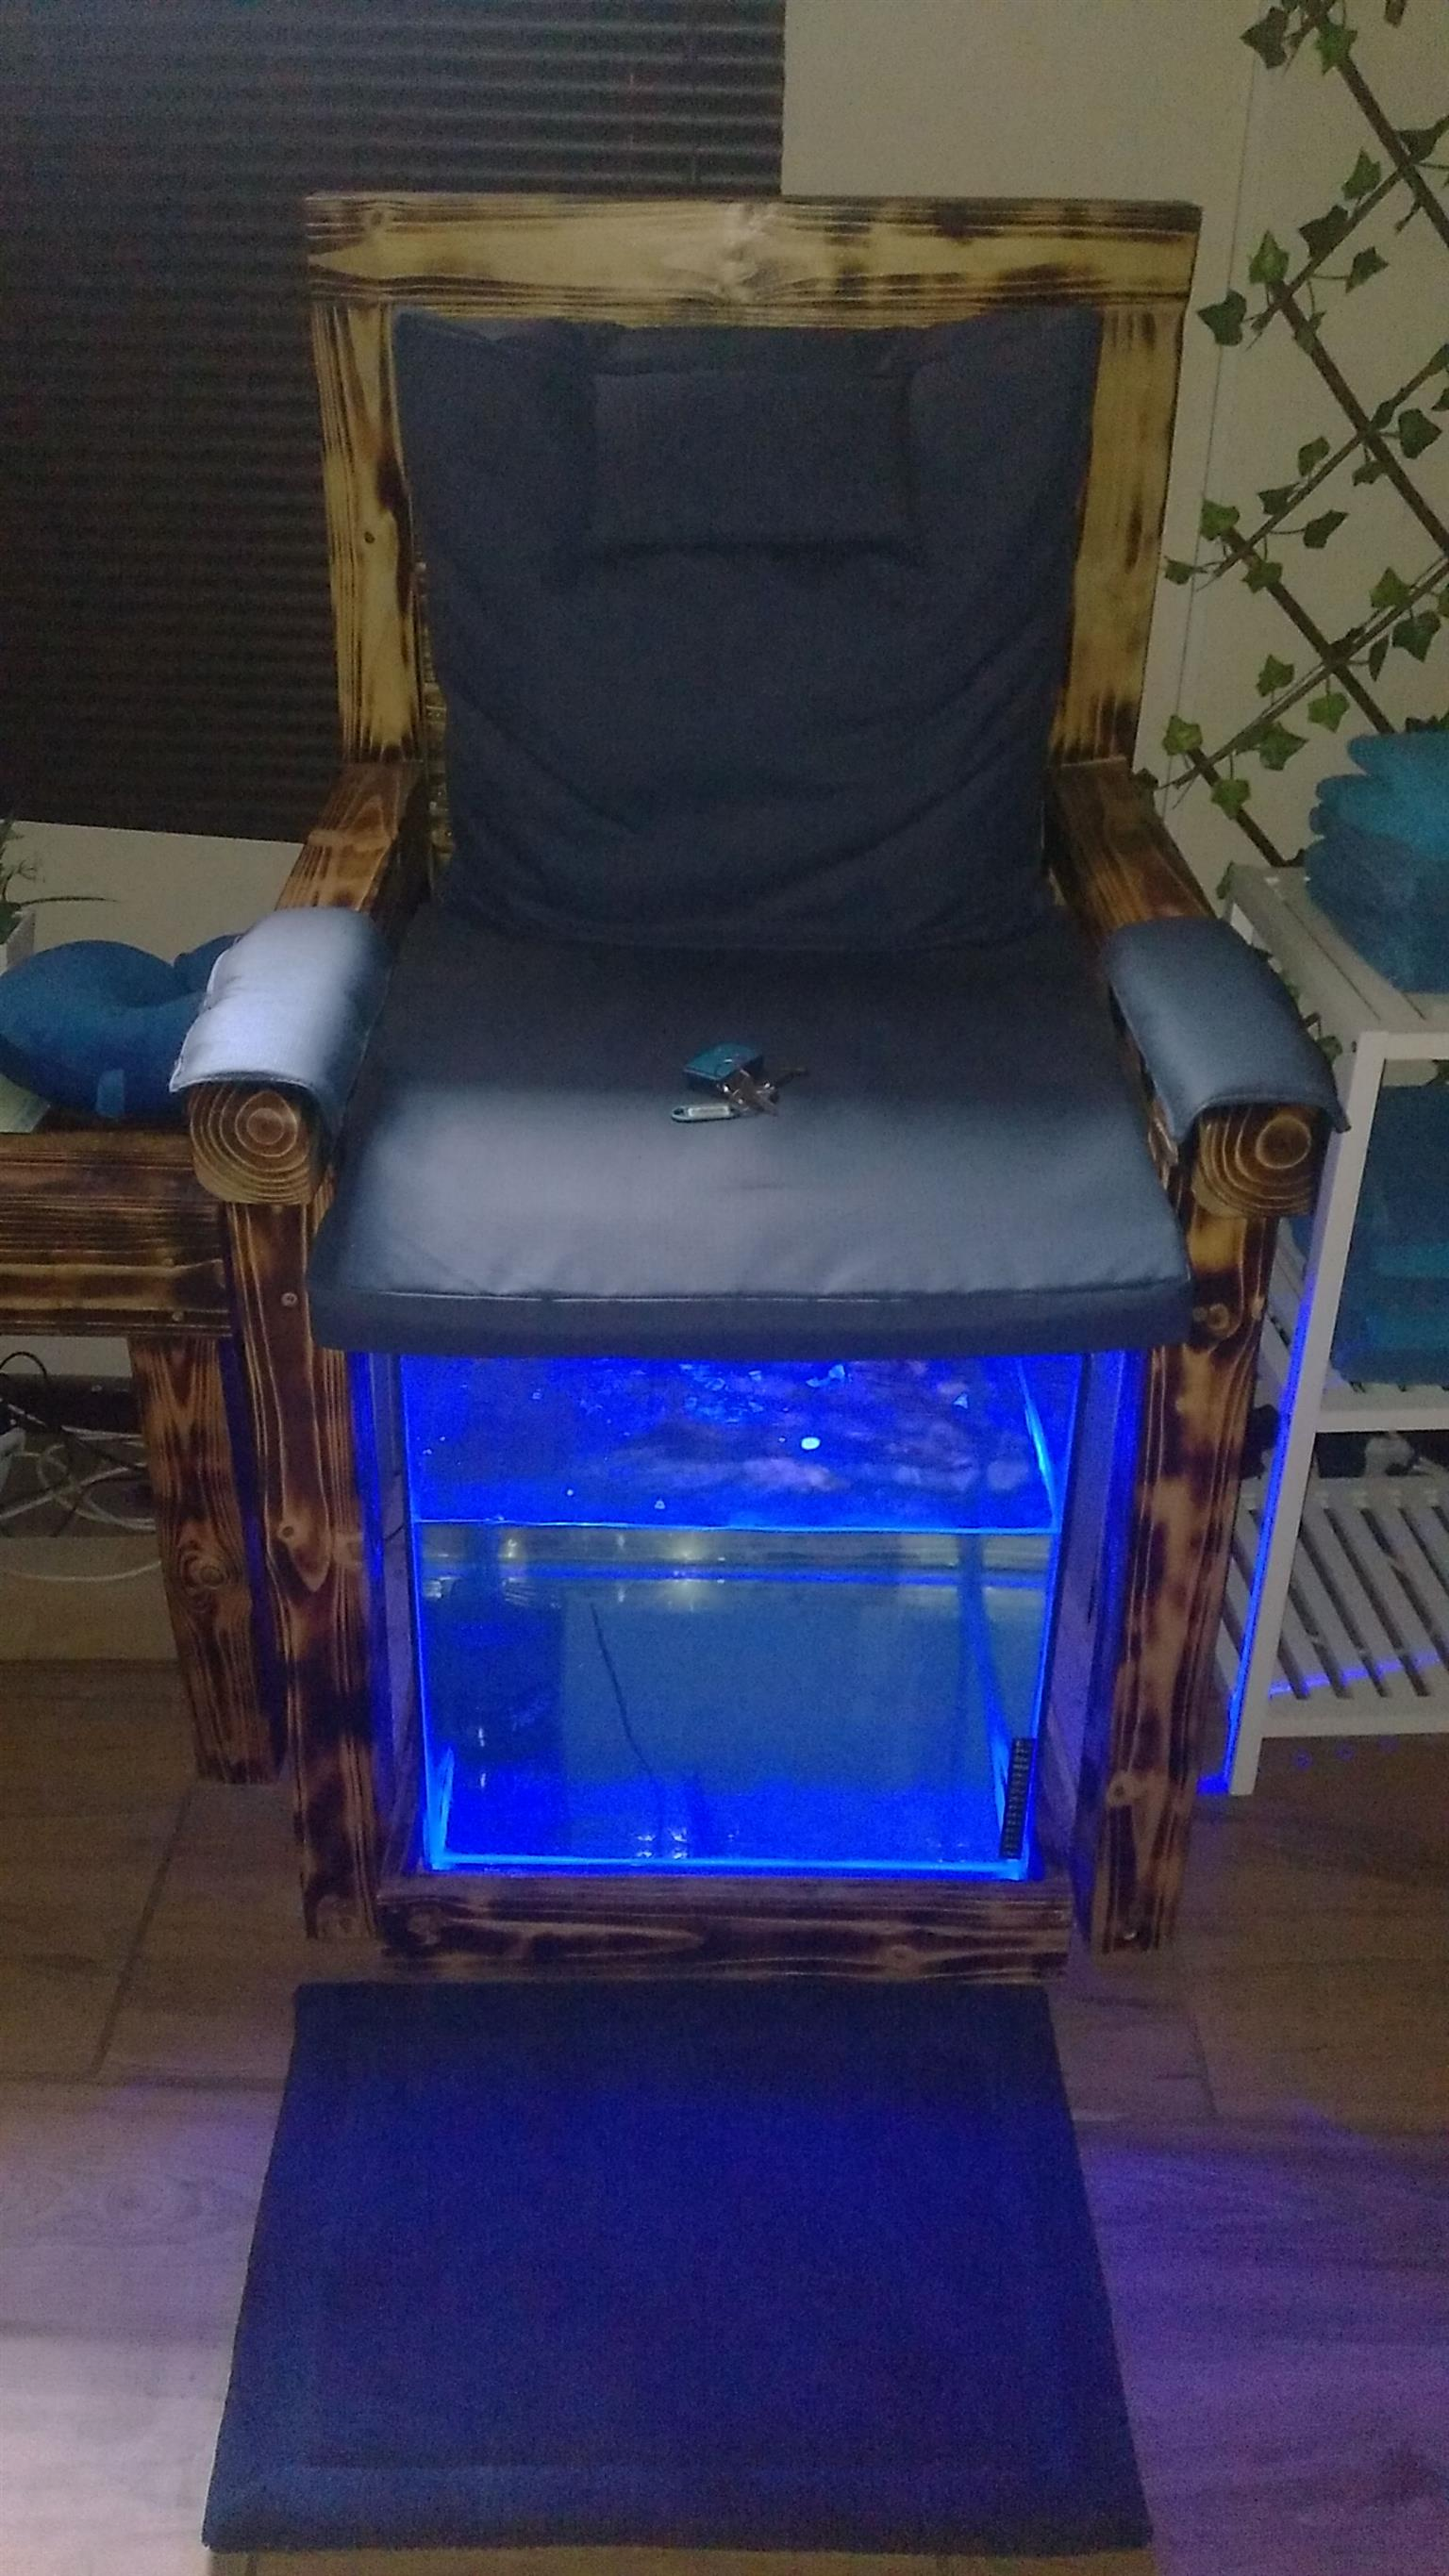 Fish spa business for sale